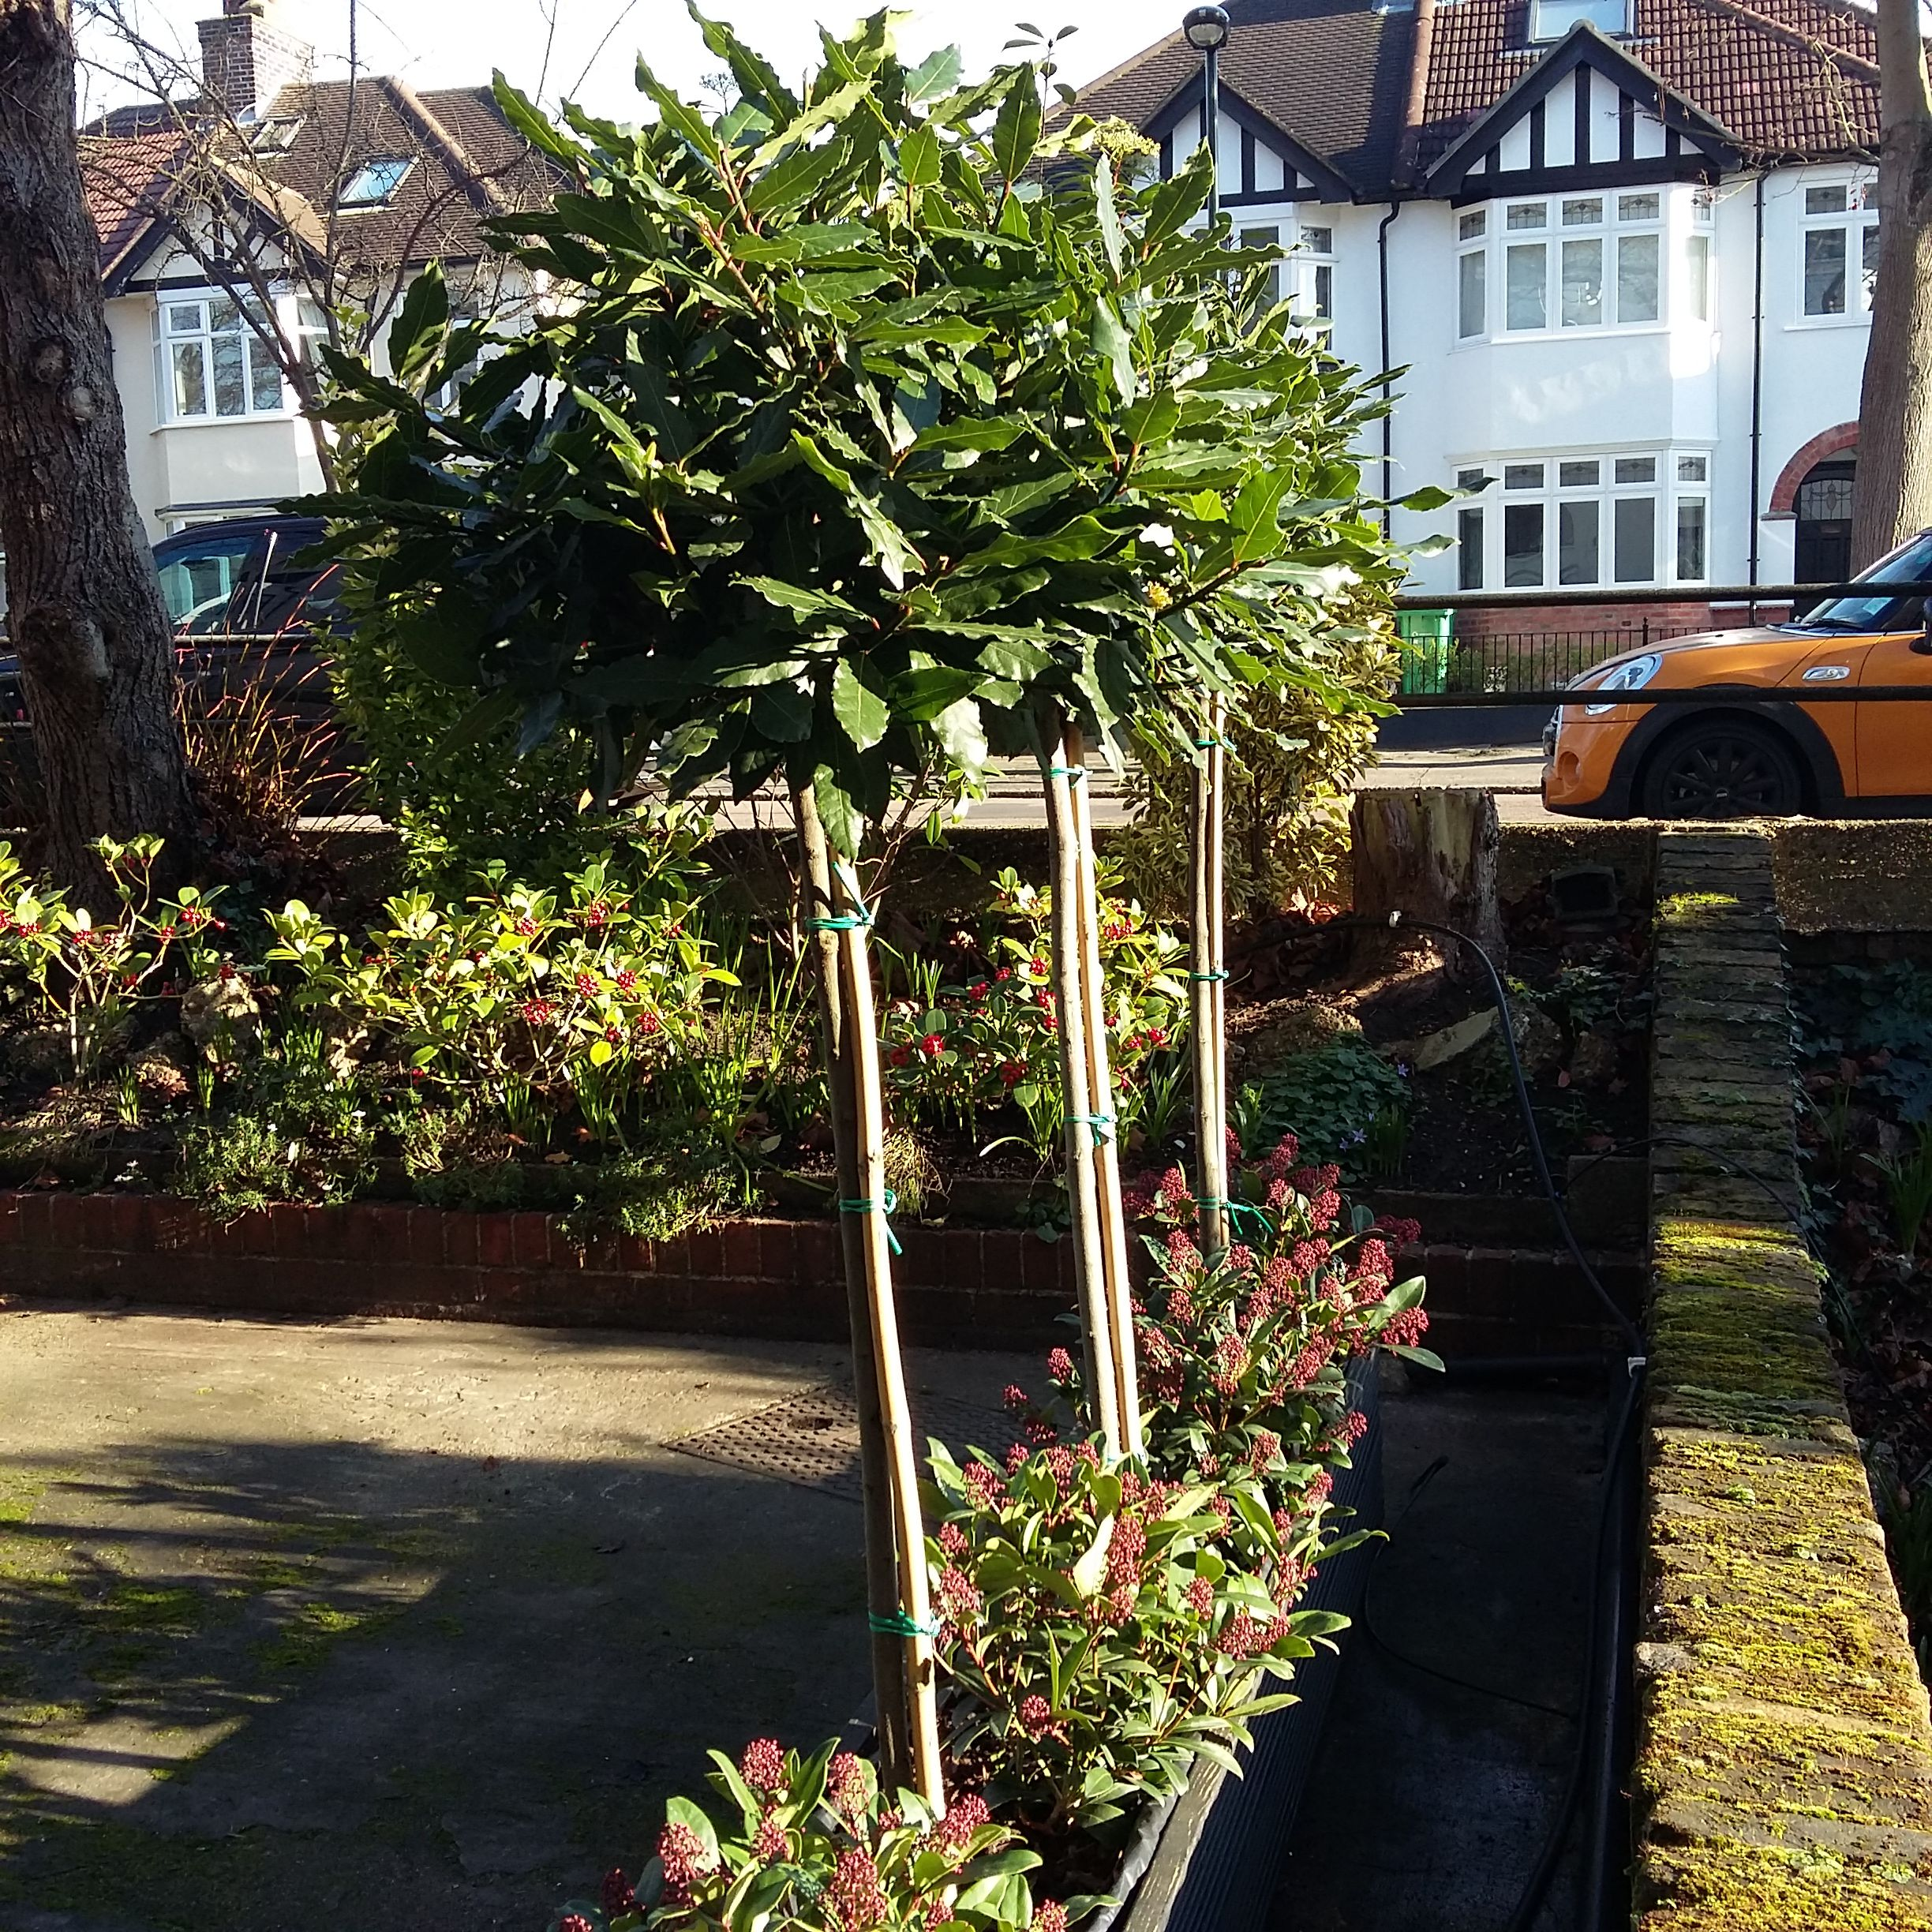 Laurus nobilis underplanted with Skimmia japonica 'Rubella' in containers at front of block